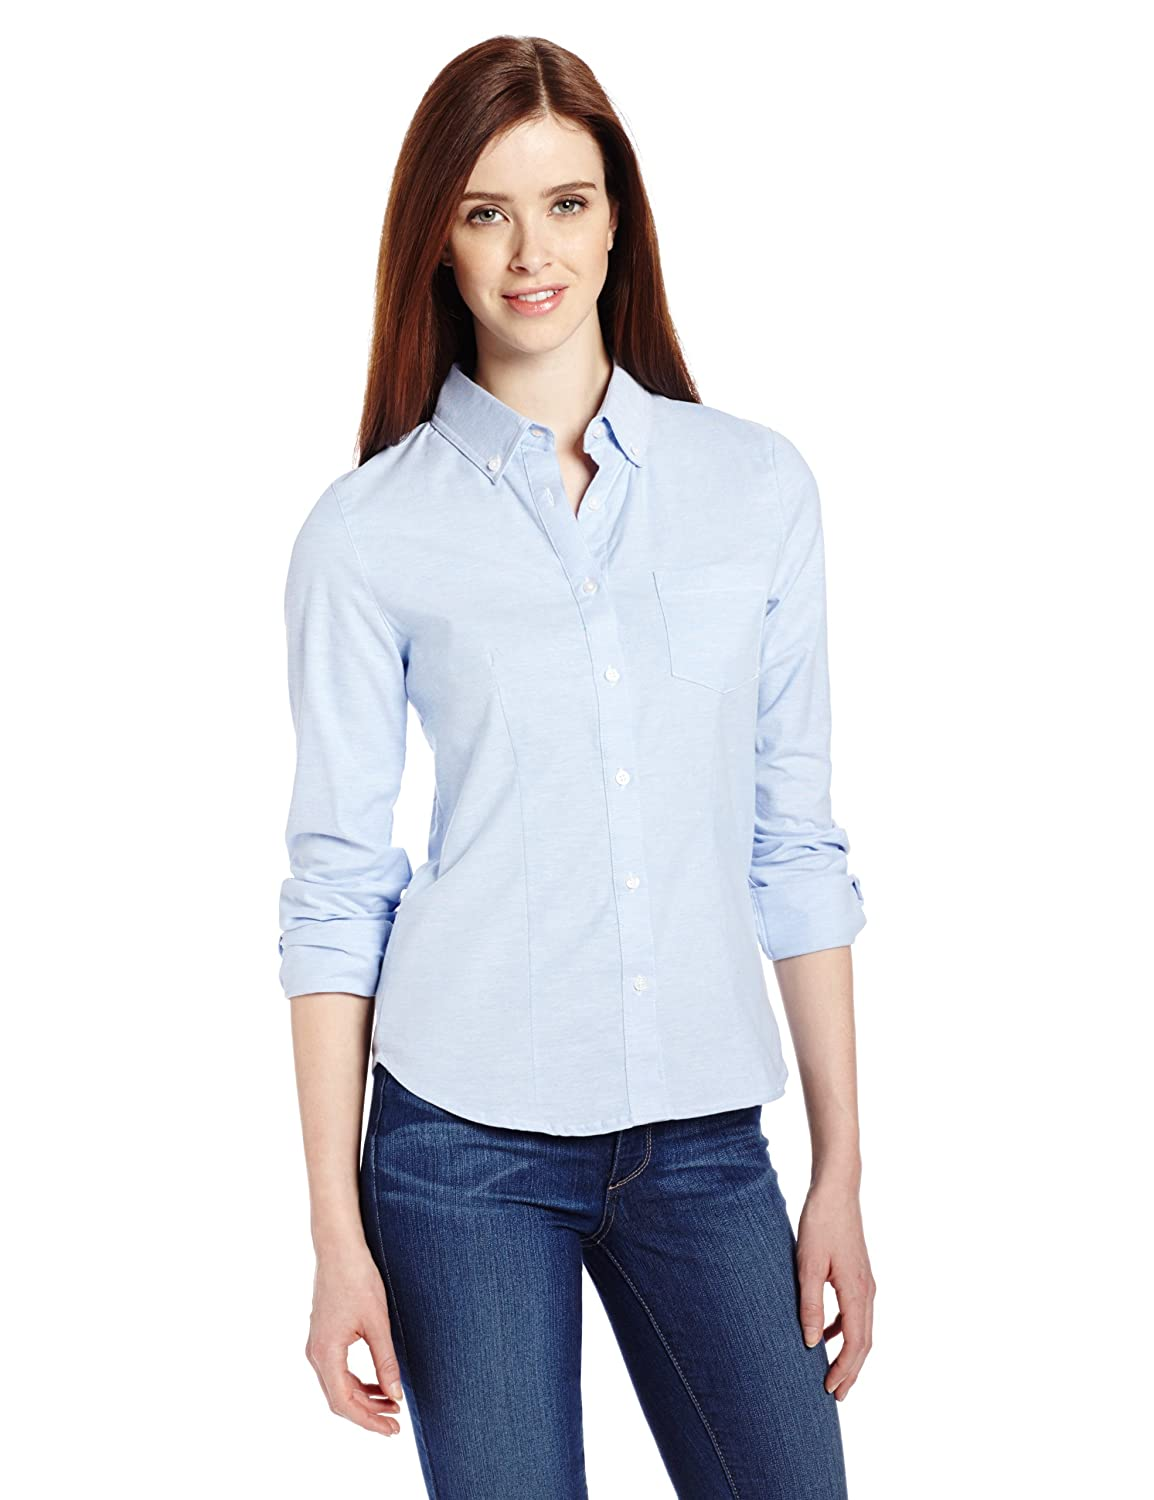 Amazon.com: Lee Uniforms Juniors' Long-Sleeve Oxford Blouse ...